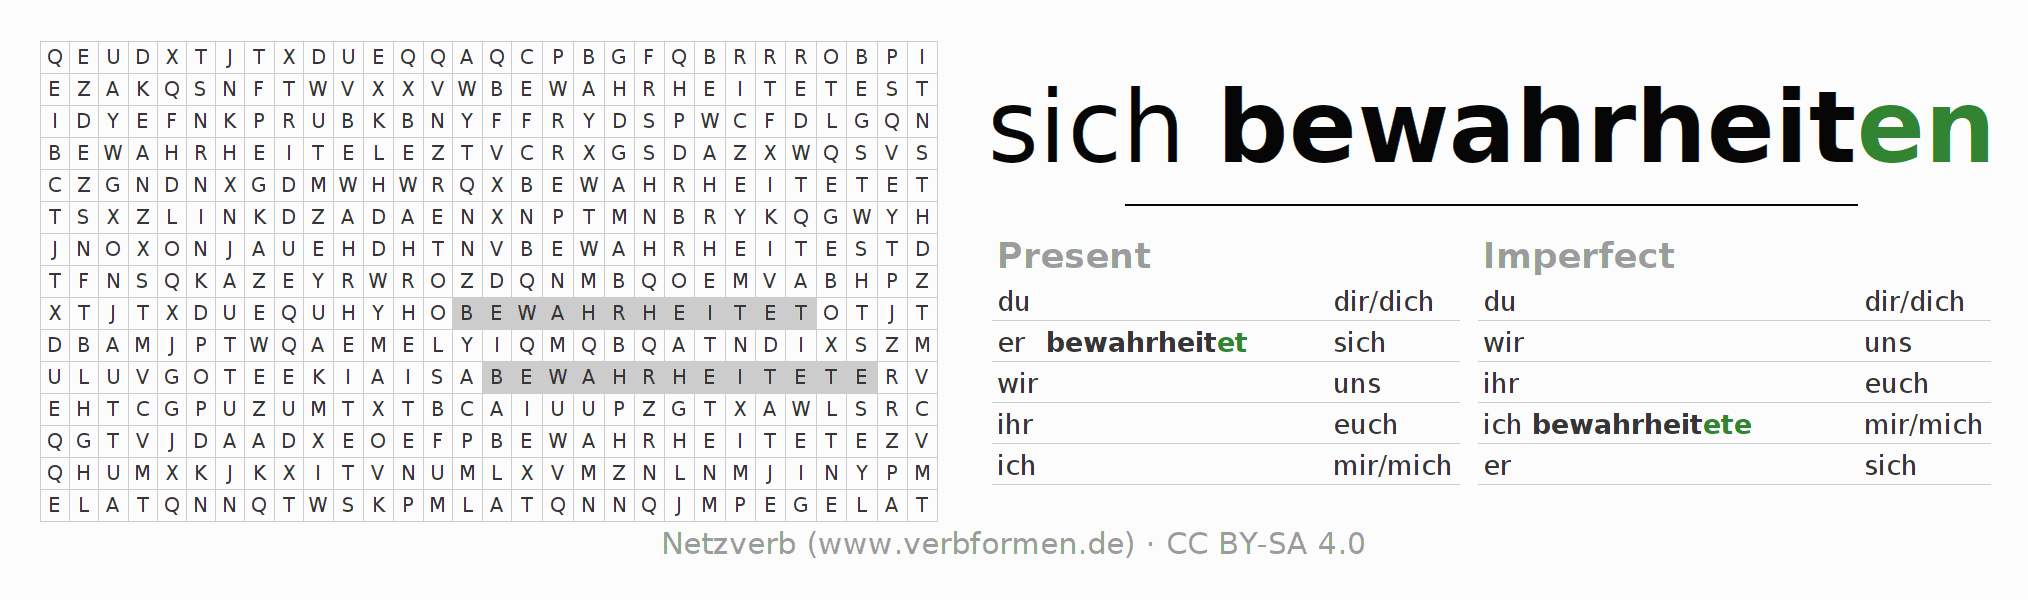 Word search puzzle for the conjugation of the verb sich bewahrheiten